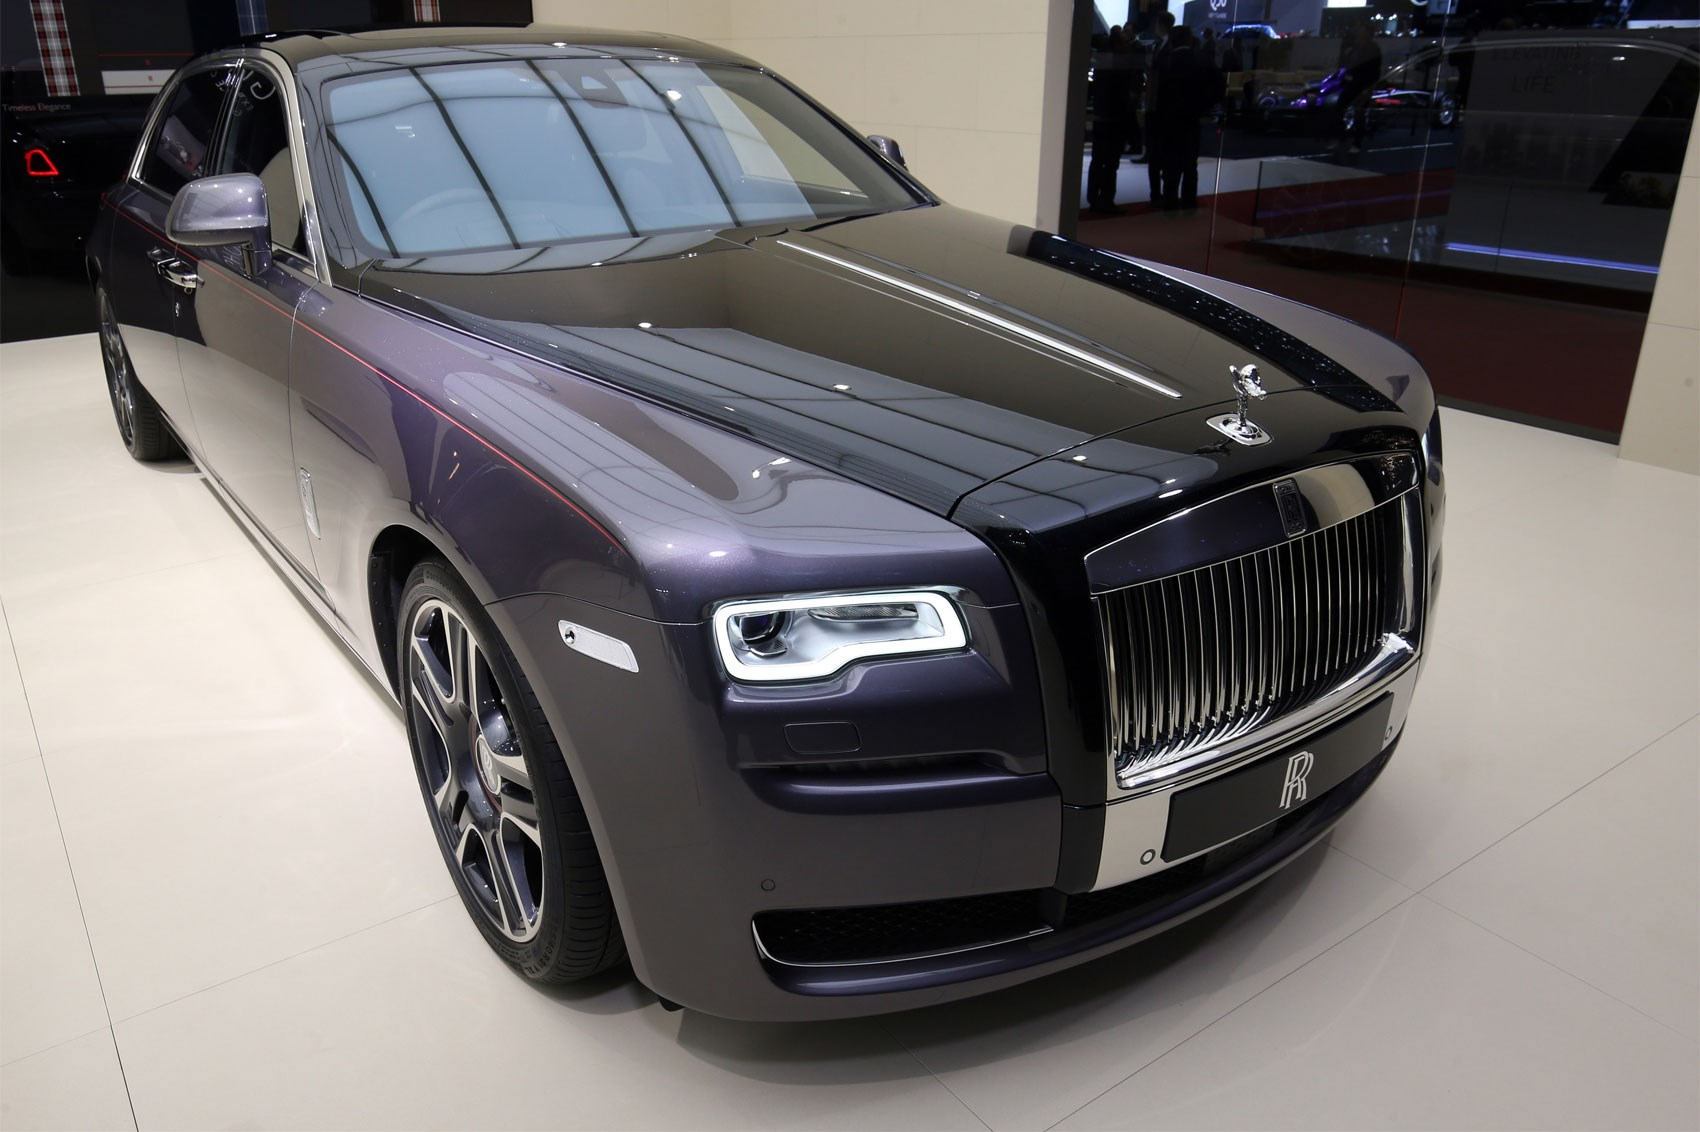 Rolls Royce Ghost Elegance With Diamond Stardust Paint At Geneva 2017